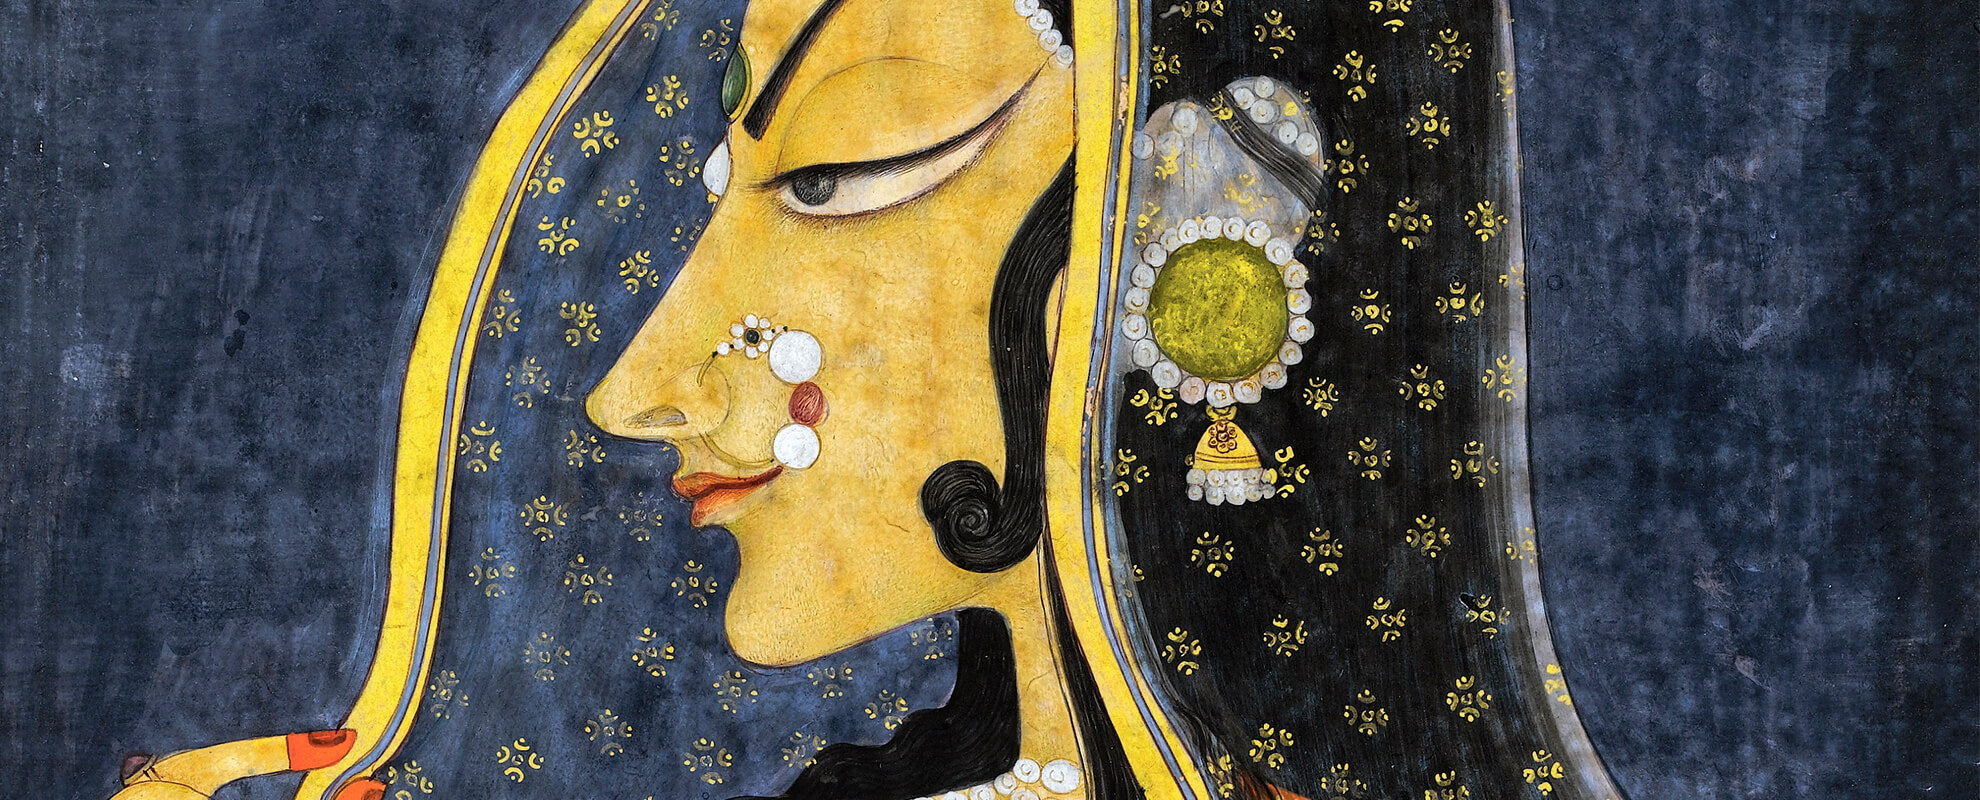 Indian Art | Buy Posters, Frames, Canvas, Digital Art & Large Size Prints